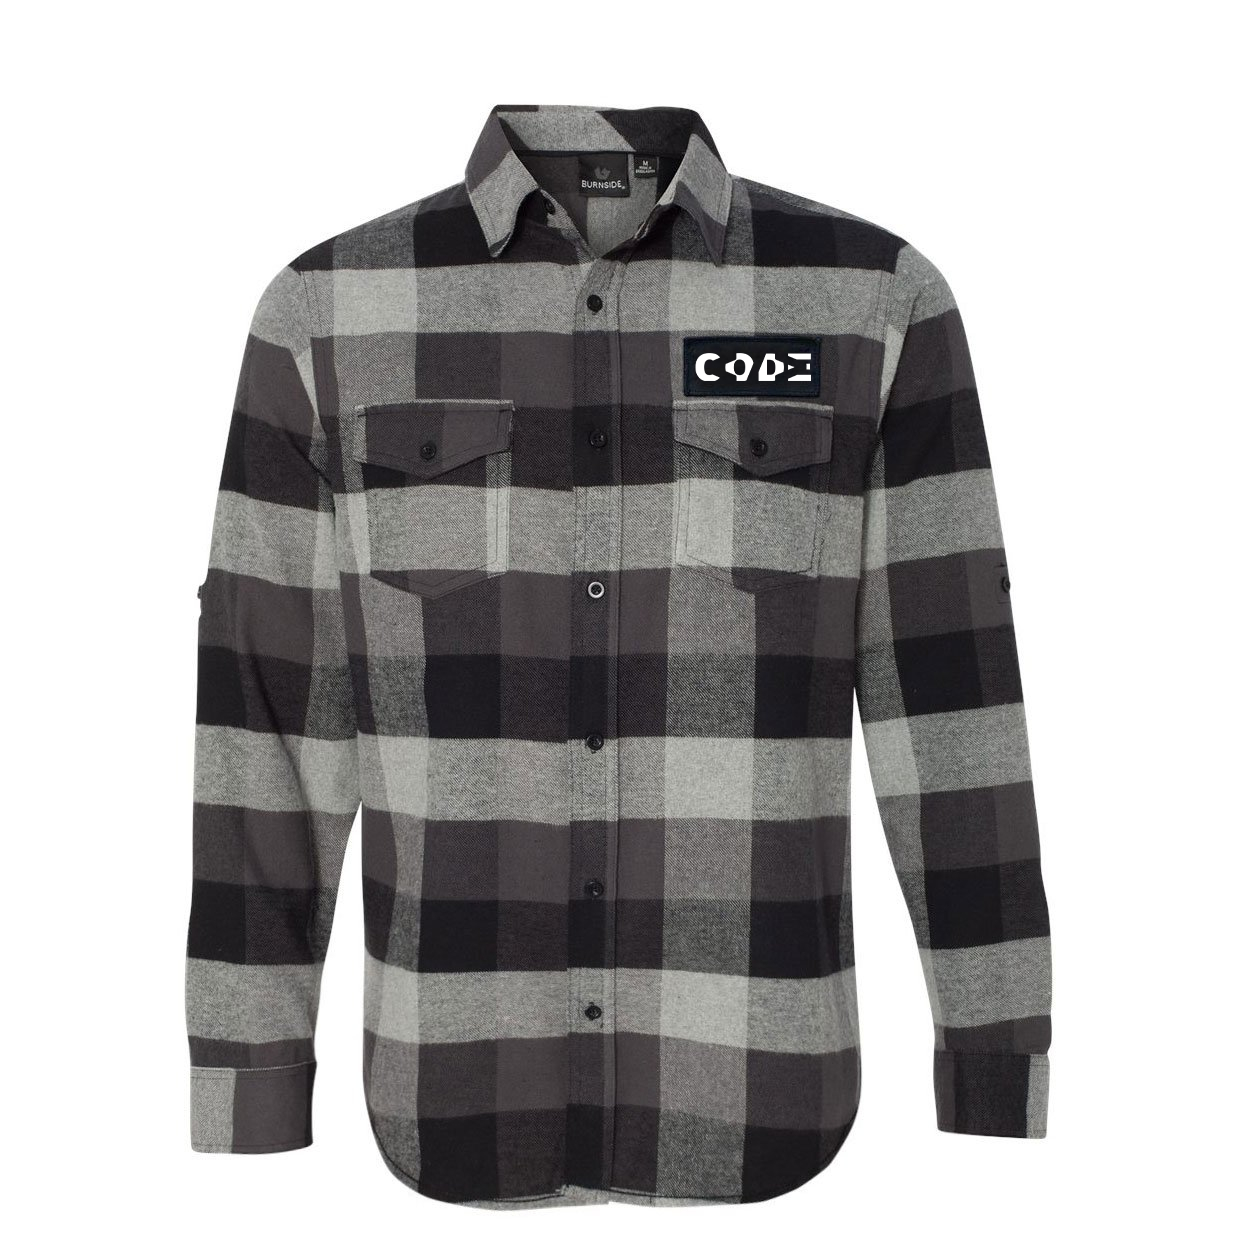 Code Tag Logo Classic Unisex Long Sleeve Woven Patch Flannel Shirt Black/Gray (White Logo)